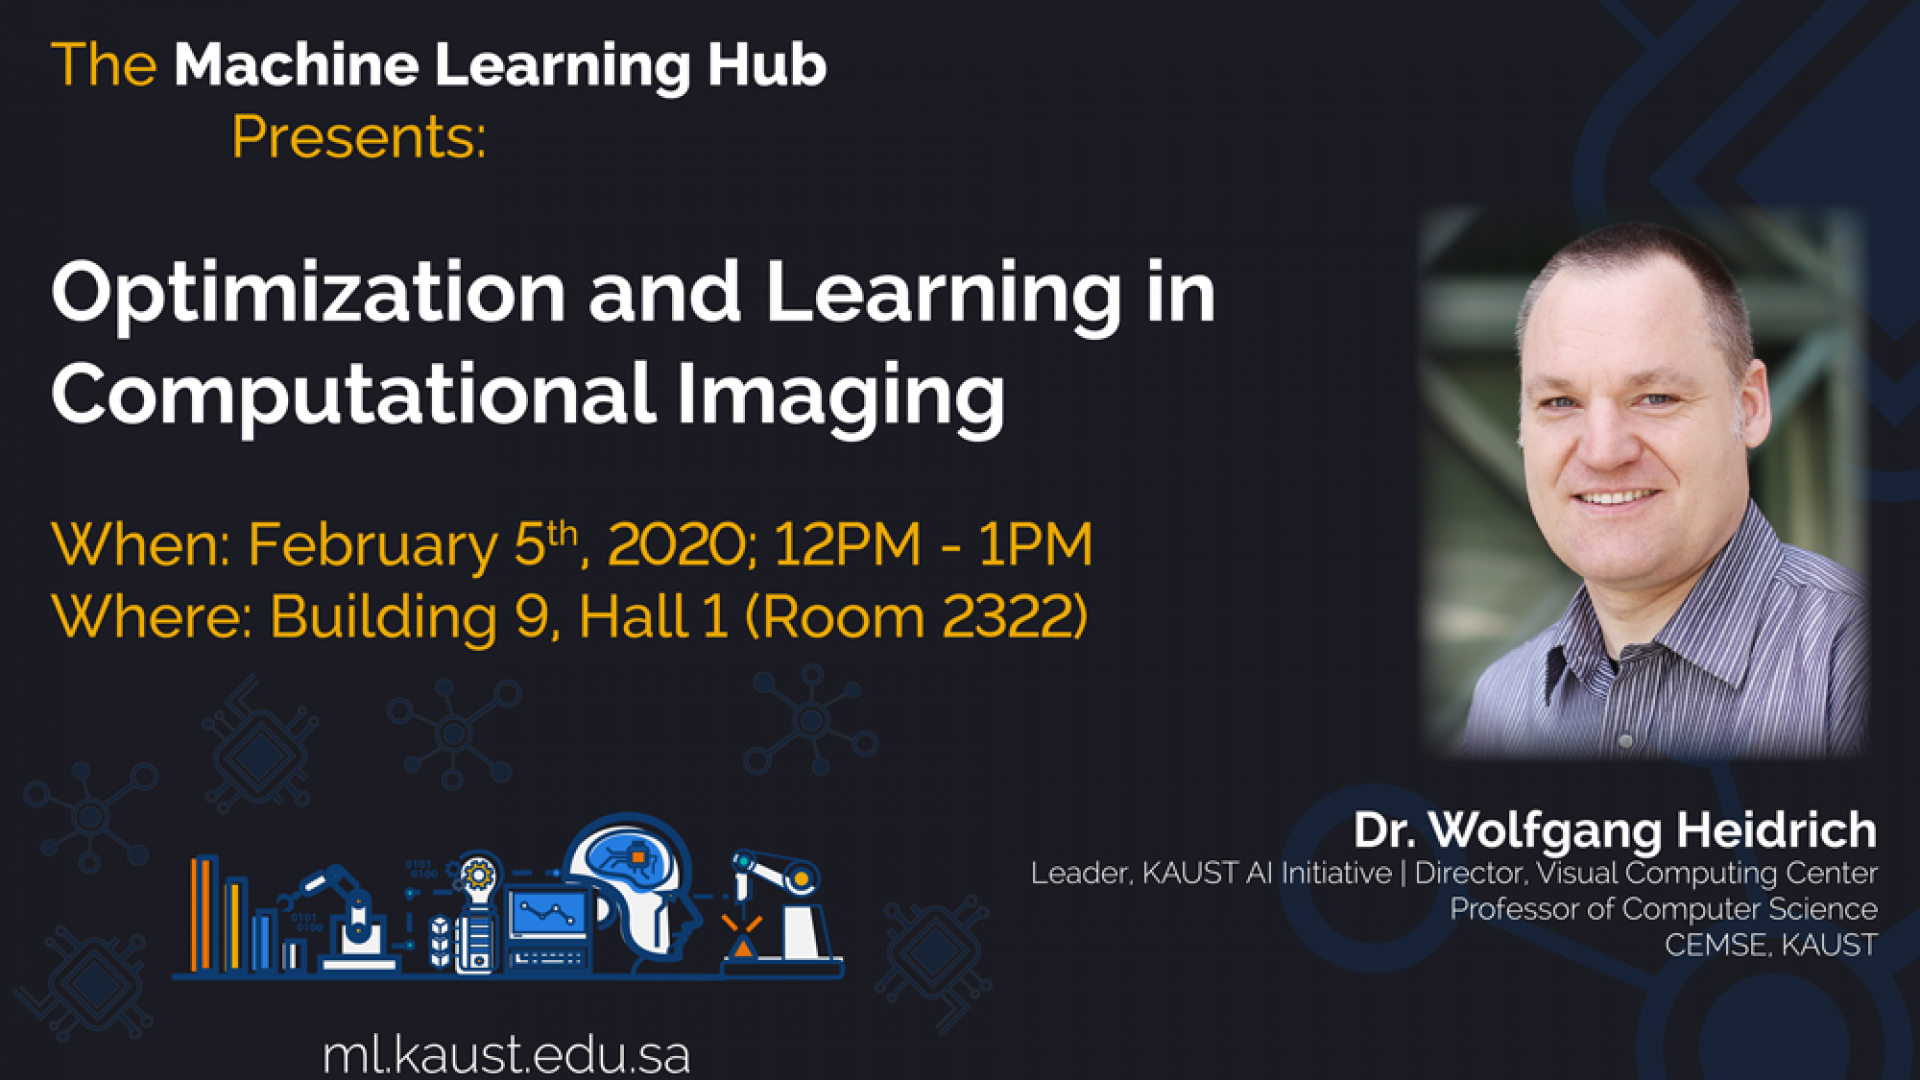 KAUST CEMSE AI ML Hub Seminar Optimization and Learning in ComputationalImaging